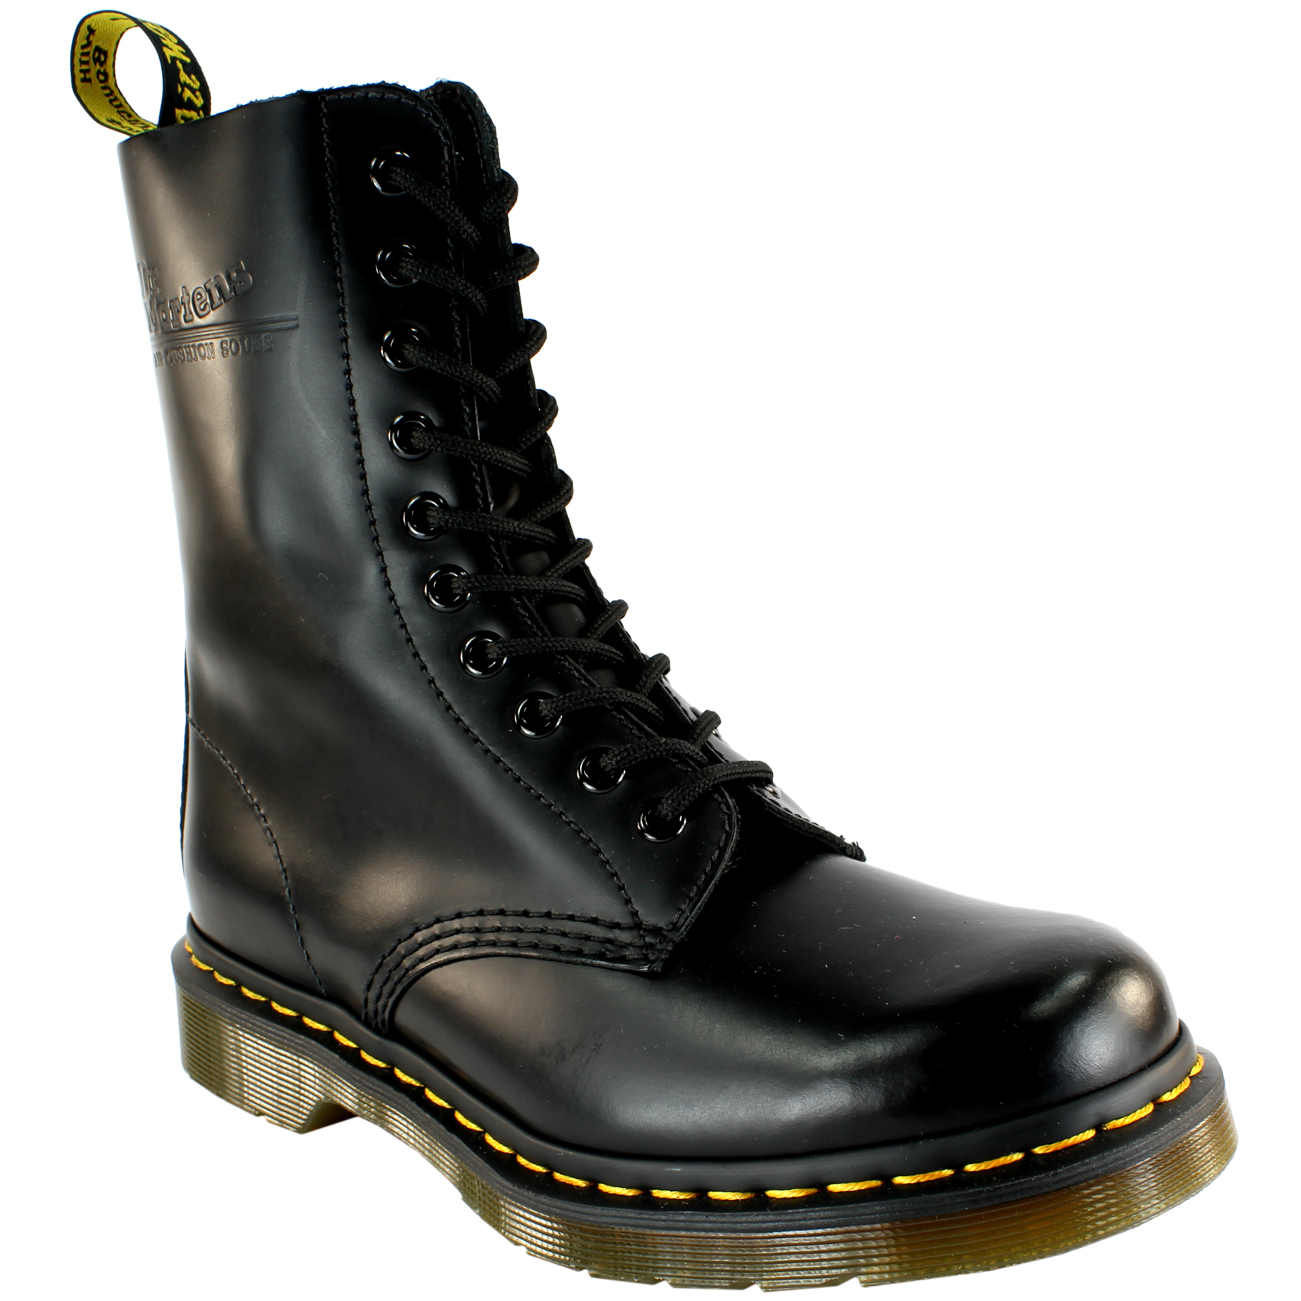 80ed7c3fa8c3 Mens Dr Martens Classic 1490 Black Vintage Leather Lace Up Ankle Boot All  Sizes